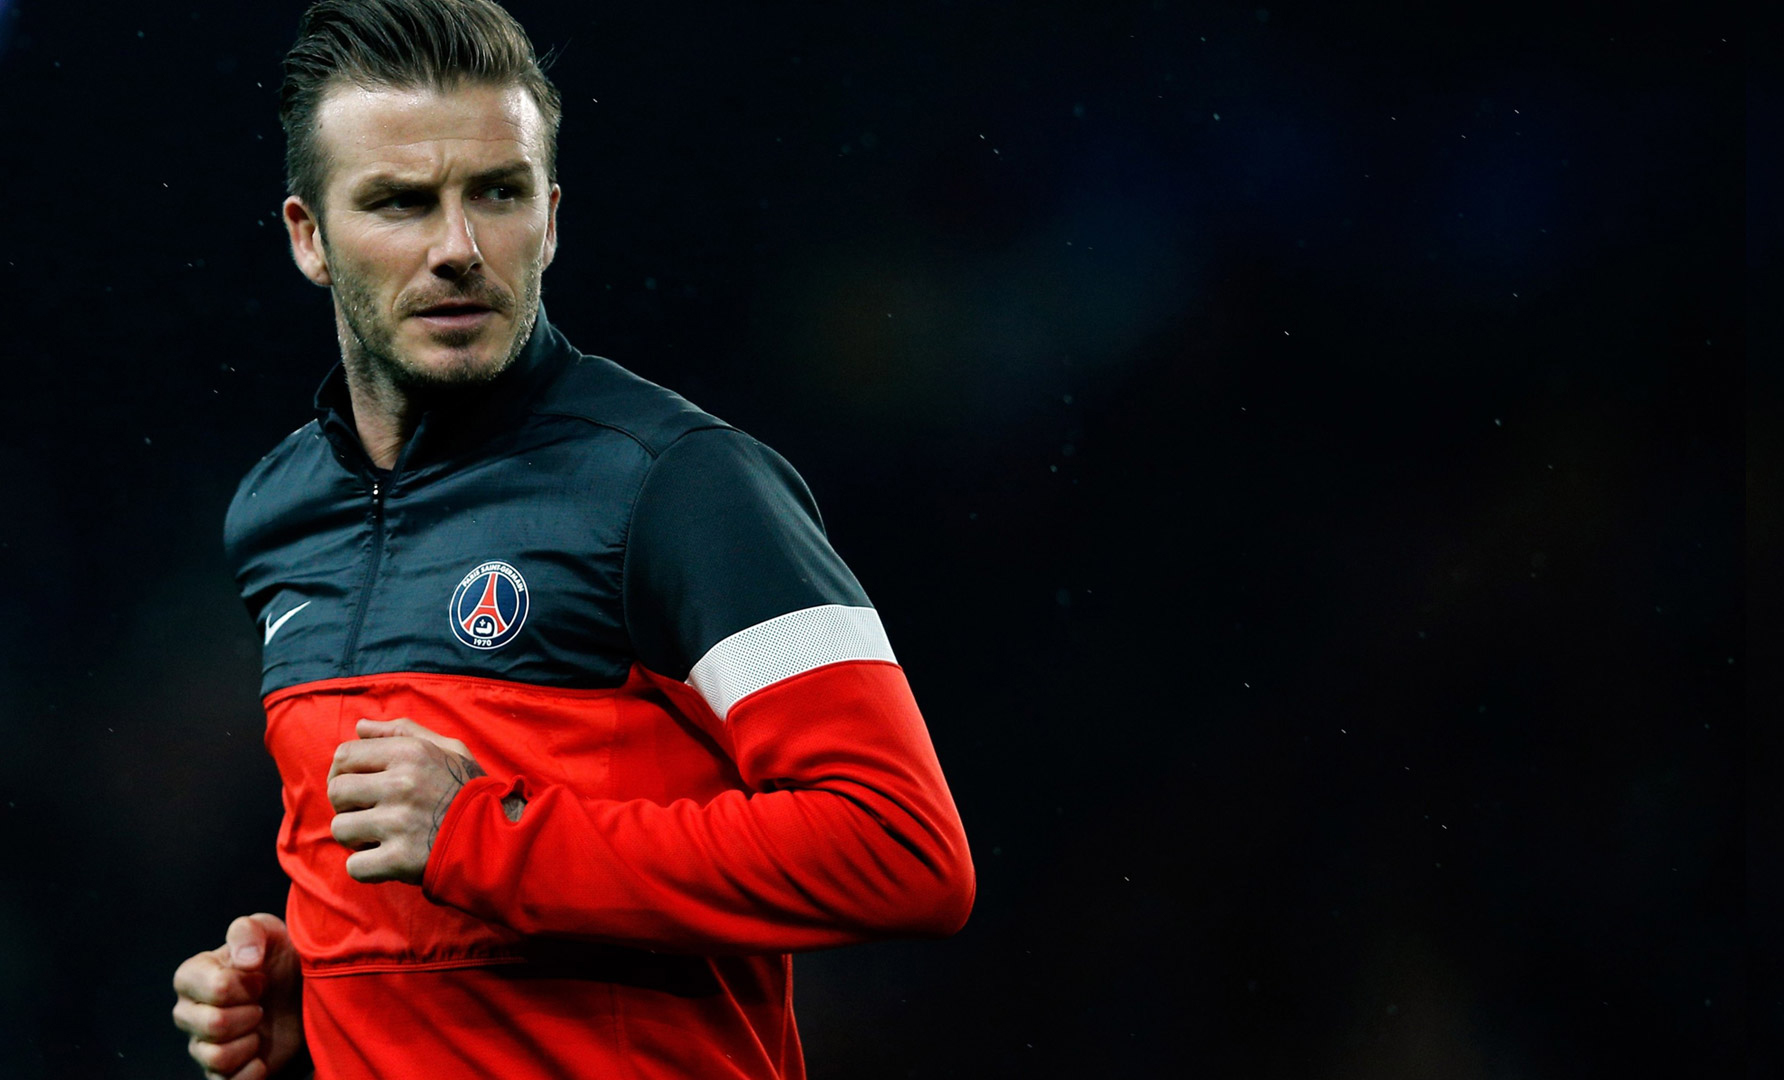 David Beckham Best HD Wallpapers HD Wallpapers 1784x1080